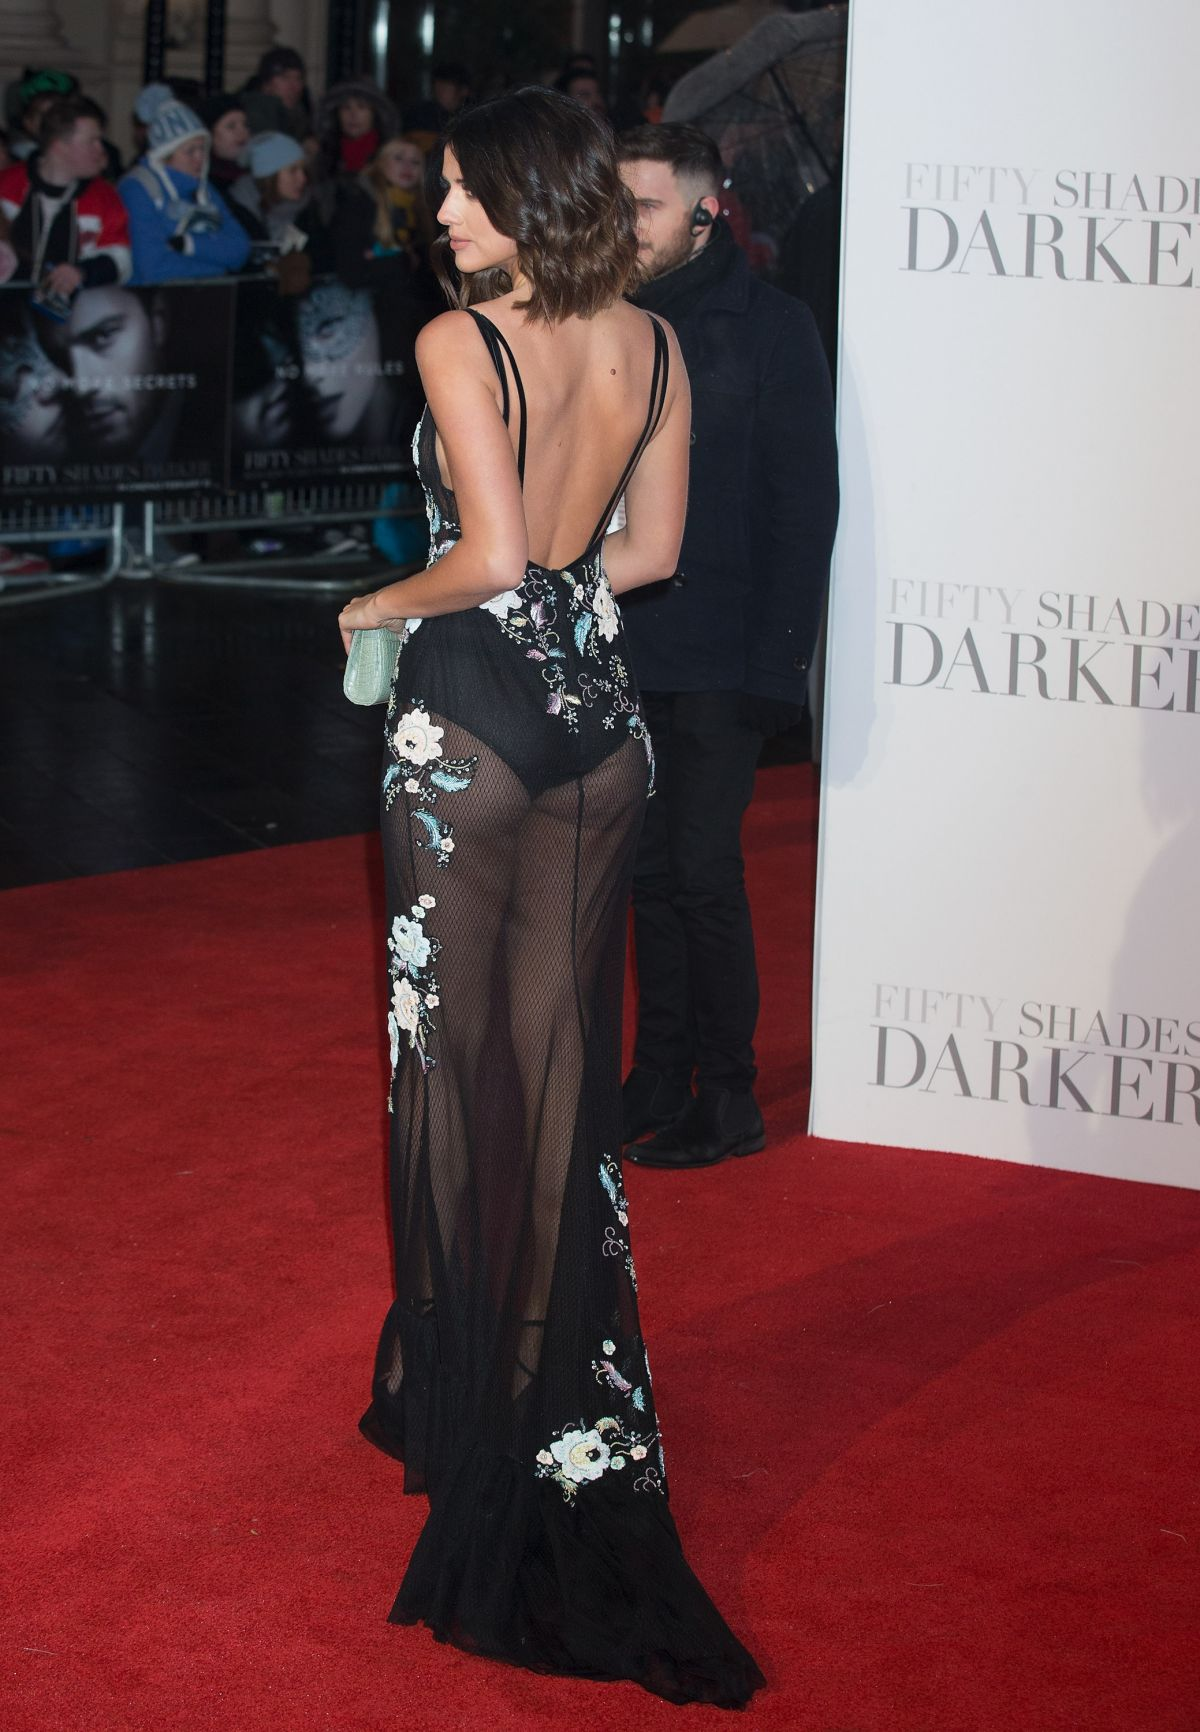 Lucy mecklenburgh fifty shades darker premiere at odeon leicester square in london 292019 - 2019 year